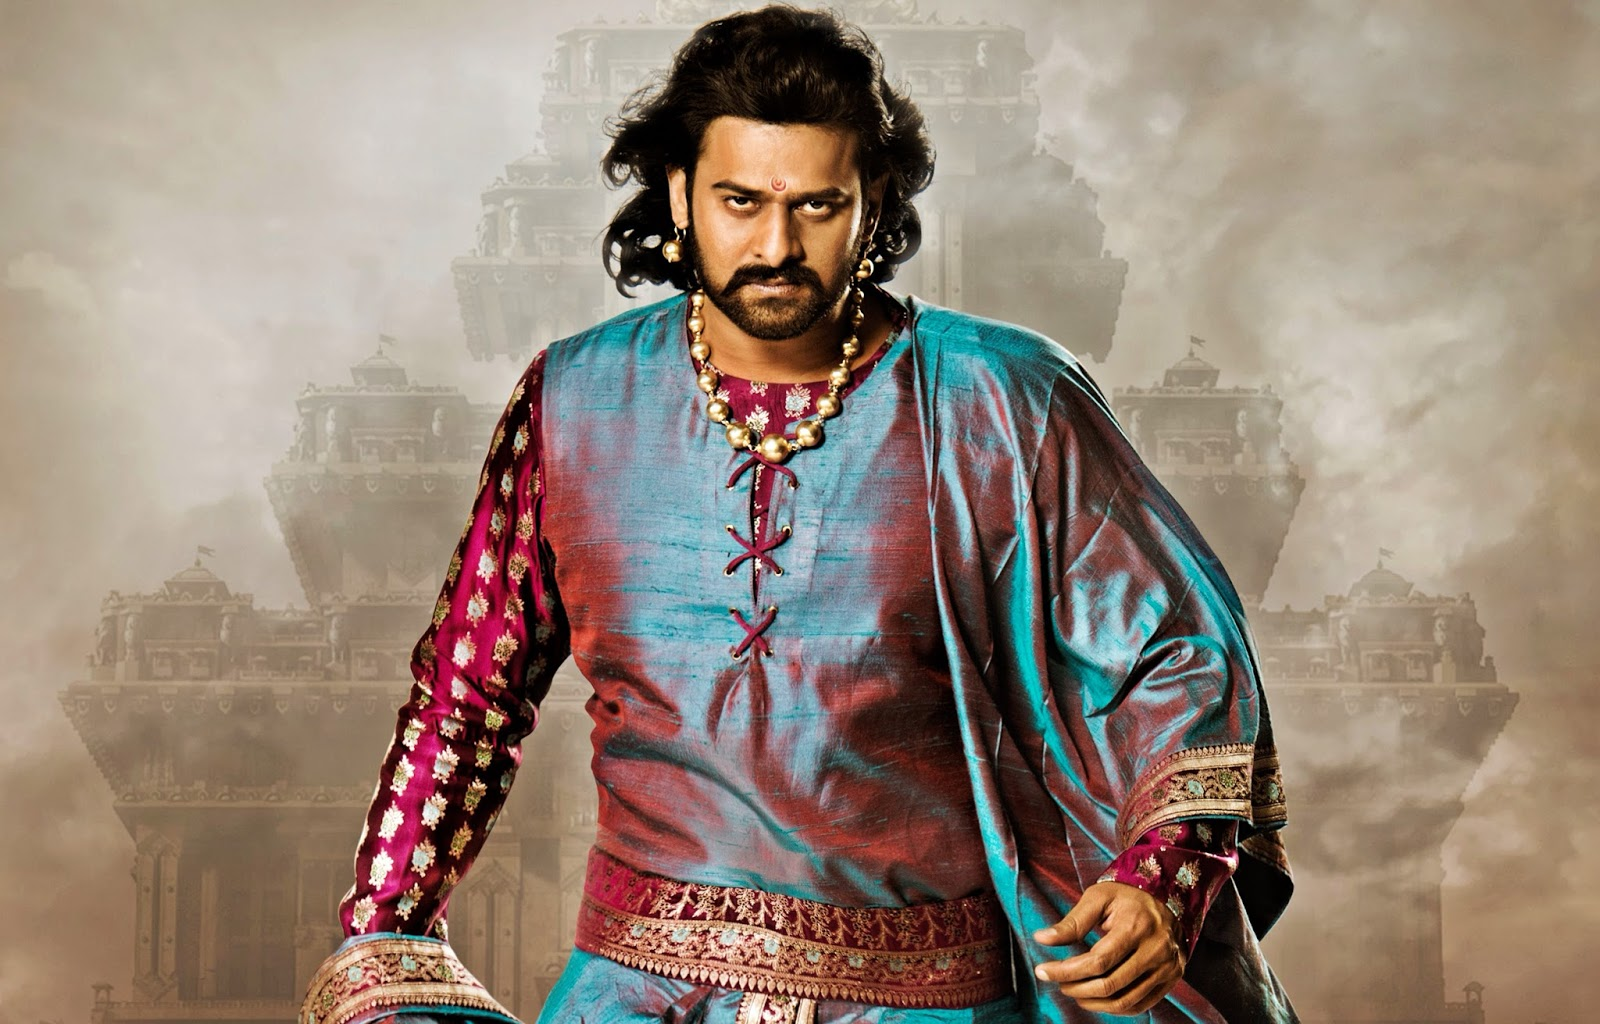 Prabhas Rebel New Stills Wallpapers Ultra Hd 2000: HD Wallpapers (High Definition)